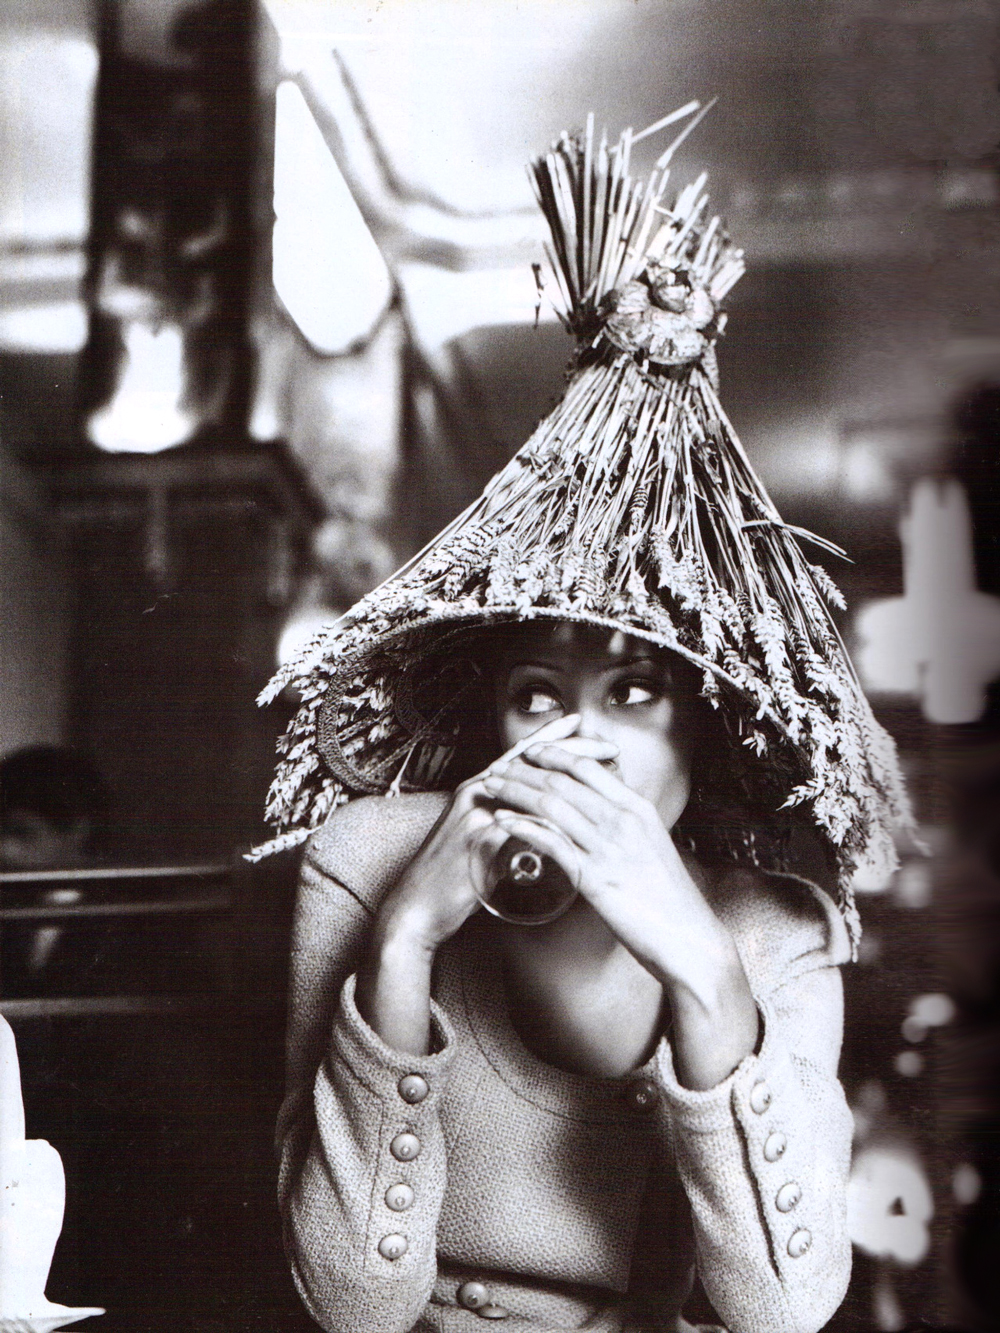 Christy Turlington in Vive Paris! / Vogue Italia February 1992 (photography: Steven Meisel, styling: Carlyne Cerf de Dudzeele) via fashioned by love / british fashion blog